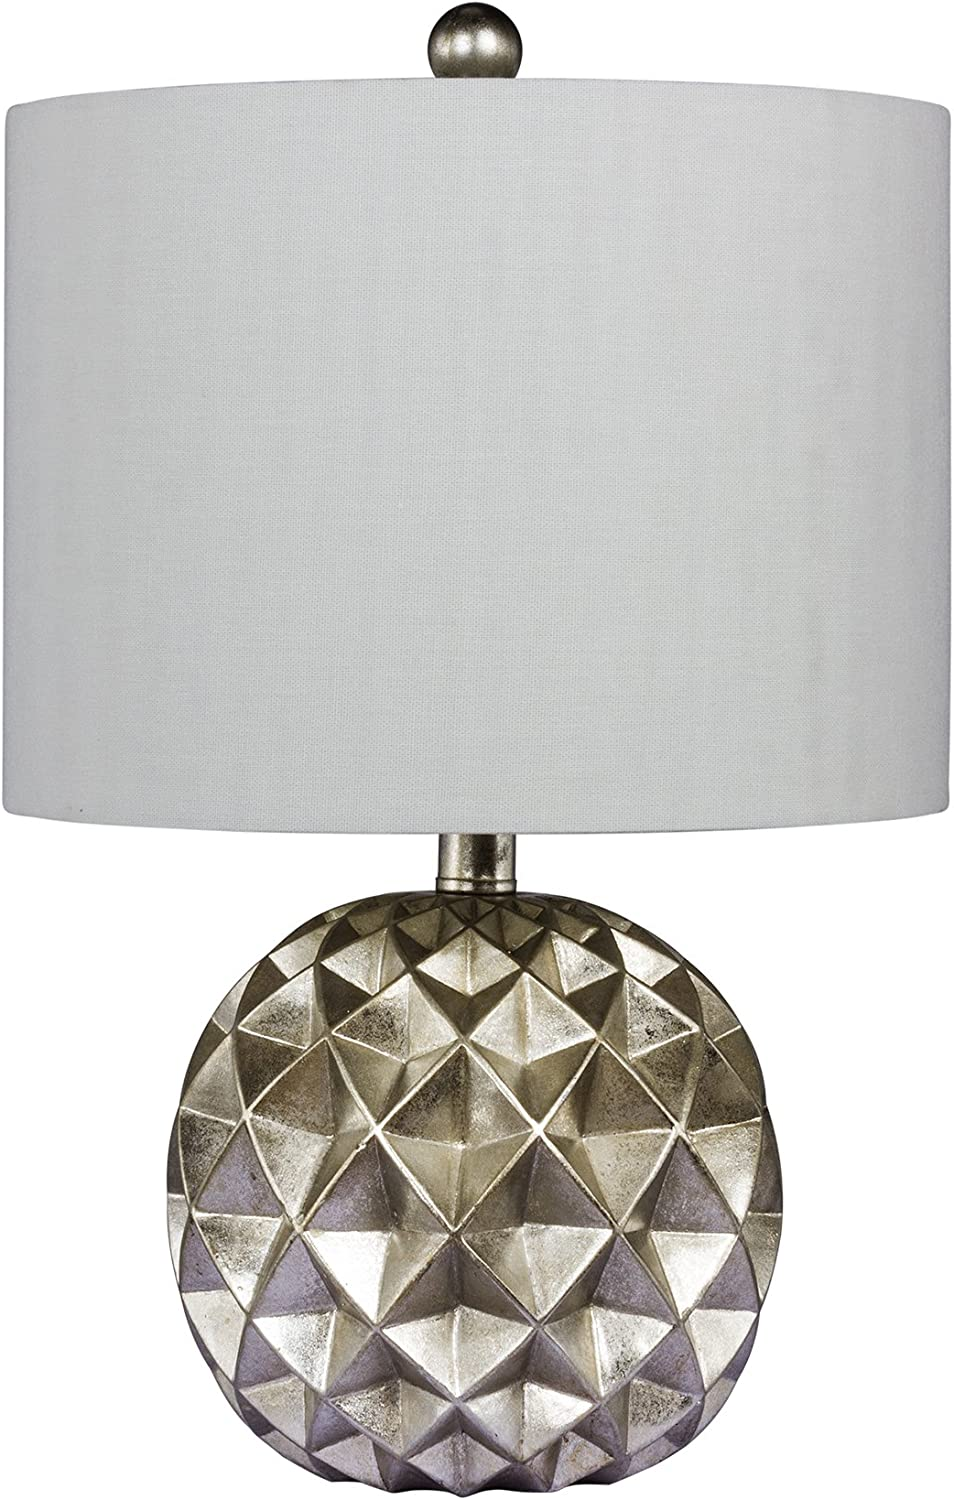 Cory Martin W-6232 Fangio Lighting's  6232 24 in. Paper Lantern Fold Resin Table Lamp in a Silver Foil Finish, 24.00,